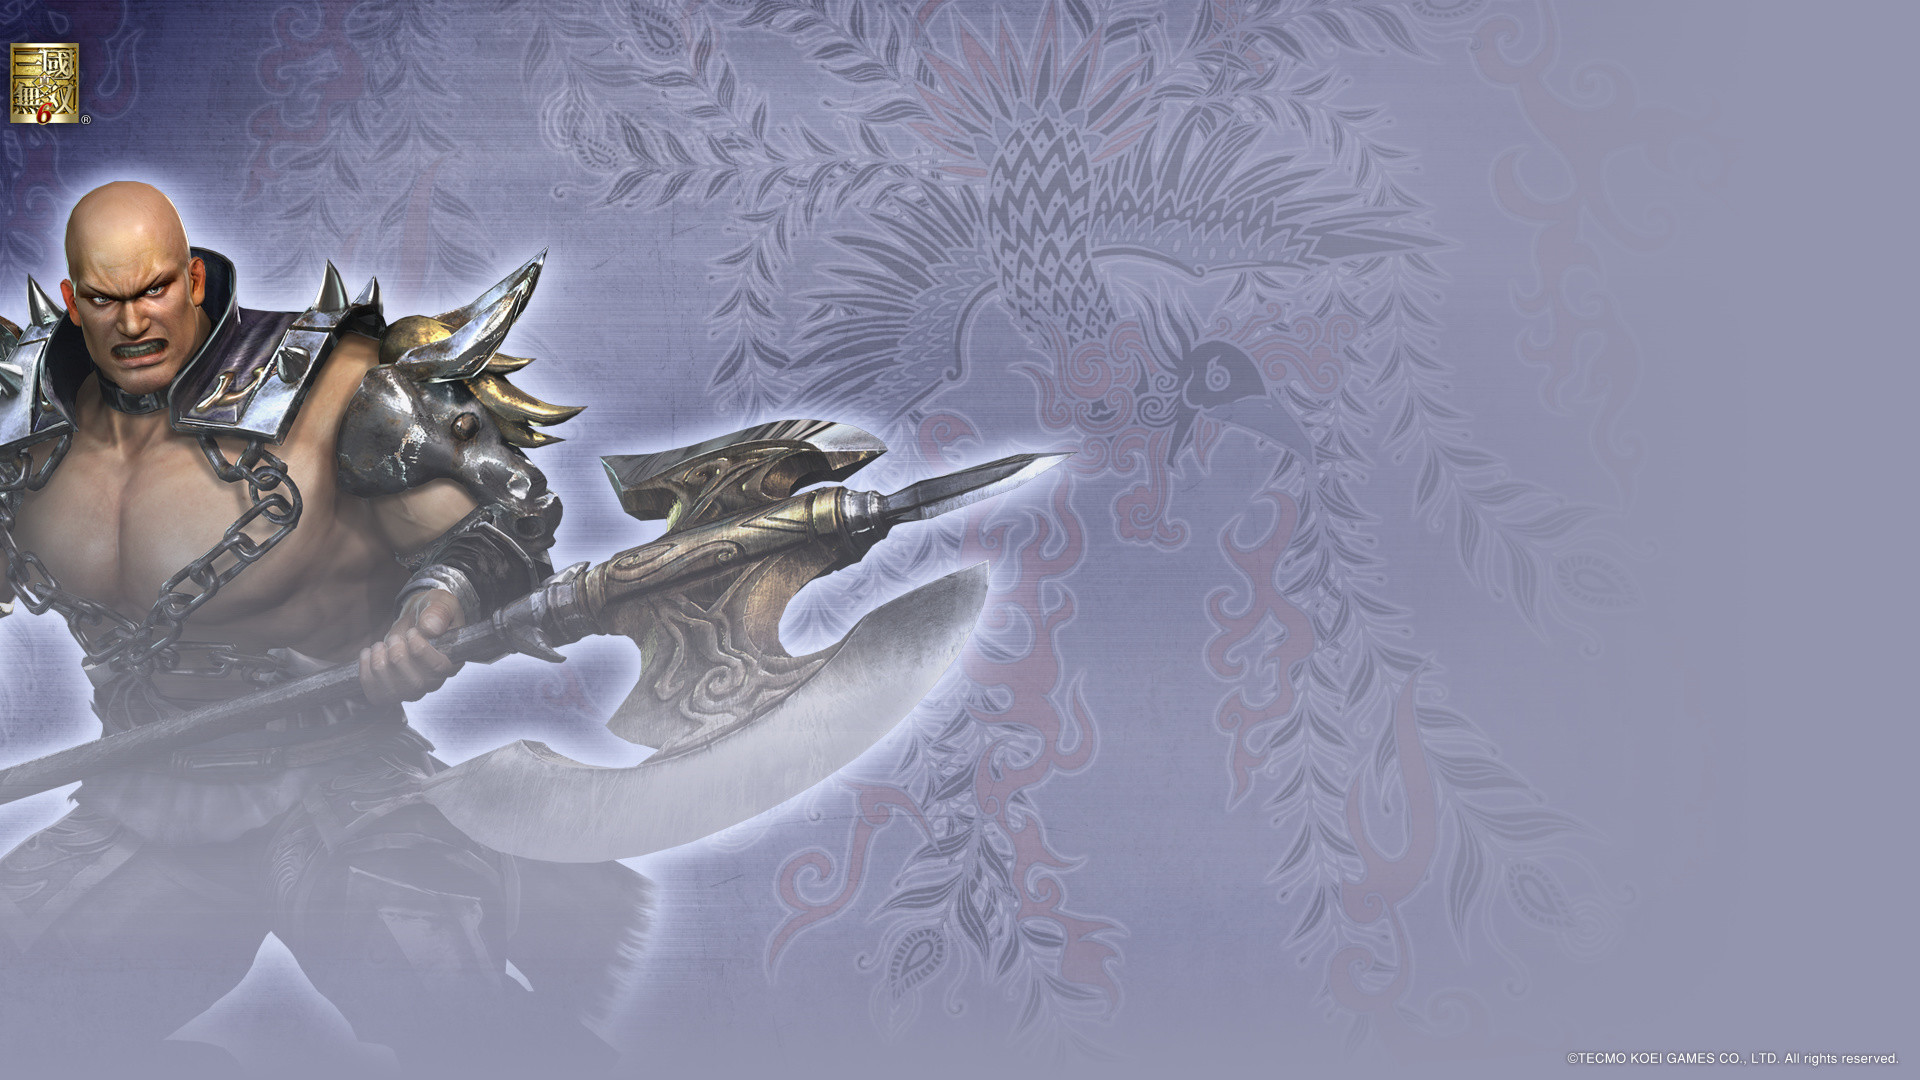 1920x1080 Wallpaper from Dynasty Warriors 7